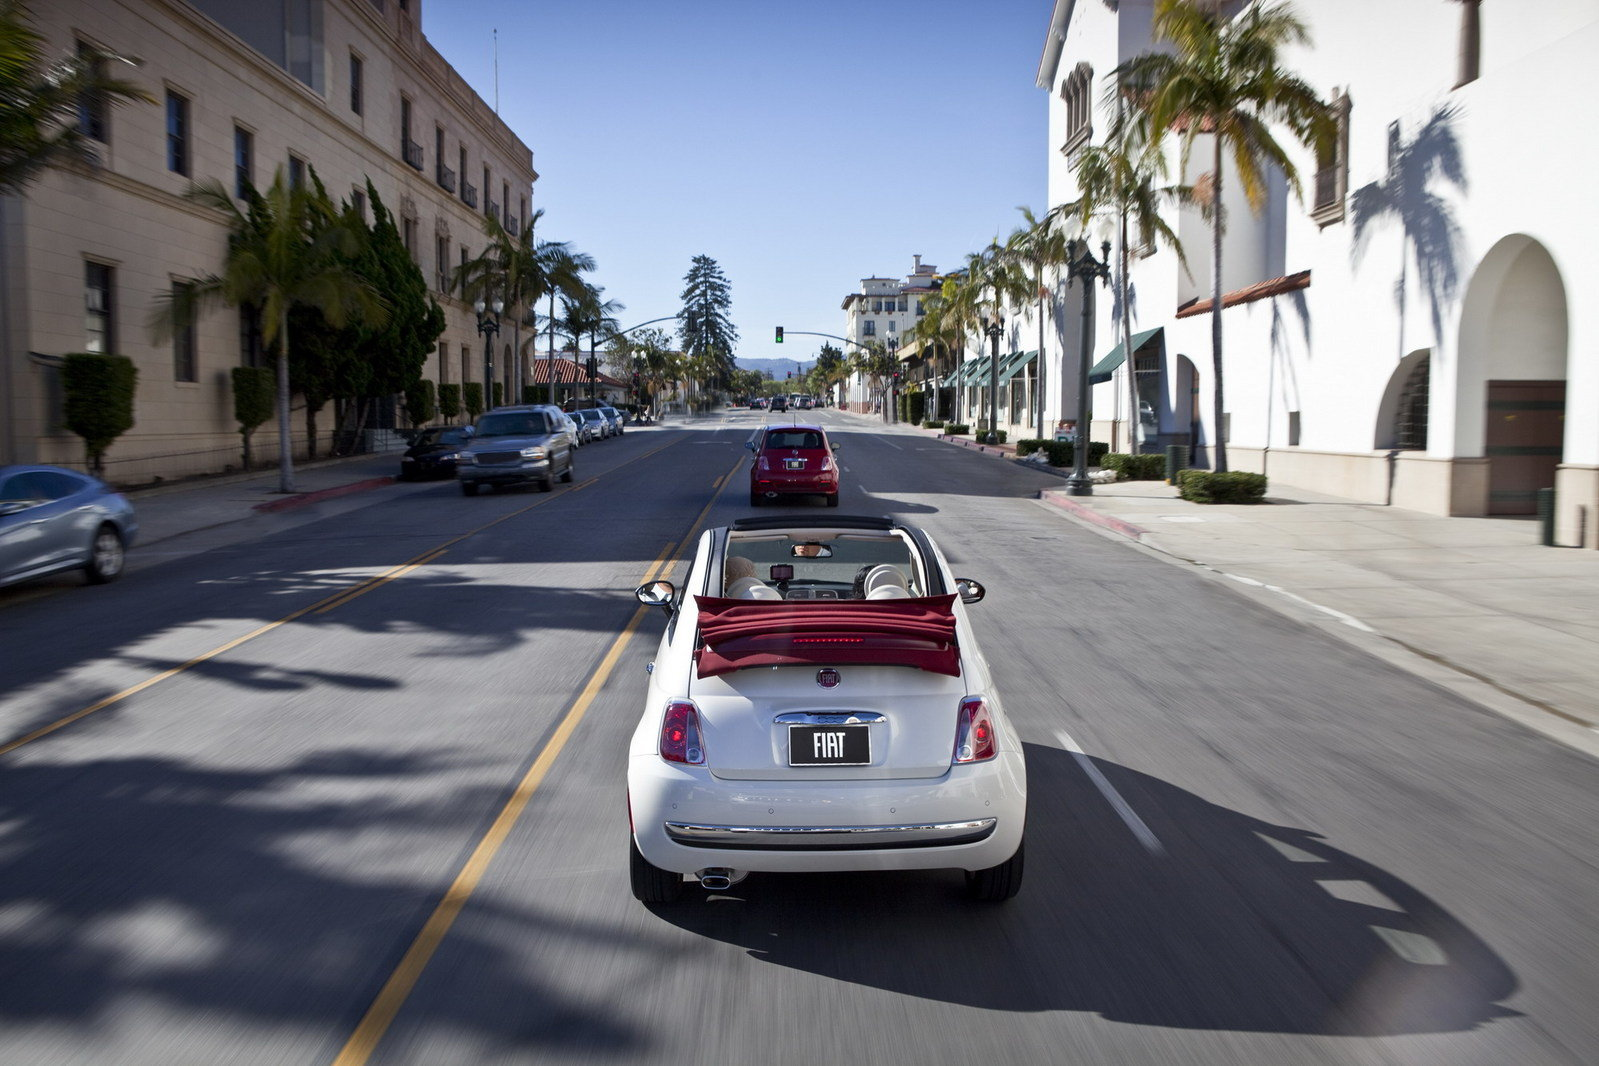 2012 fiat 500 cabrio picture 400203 car review top speed for Garage fiat paris 17